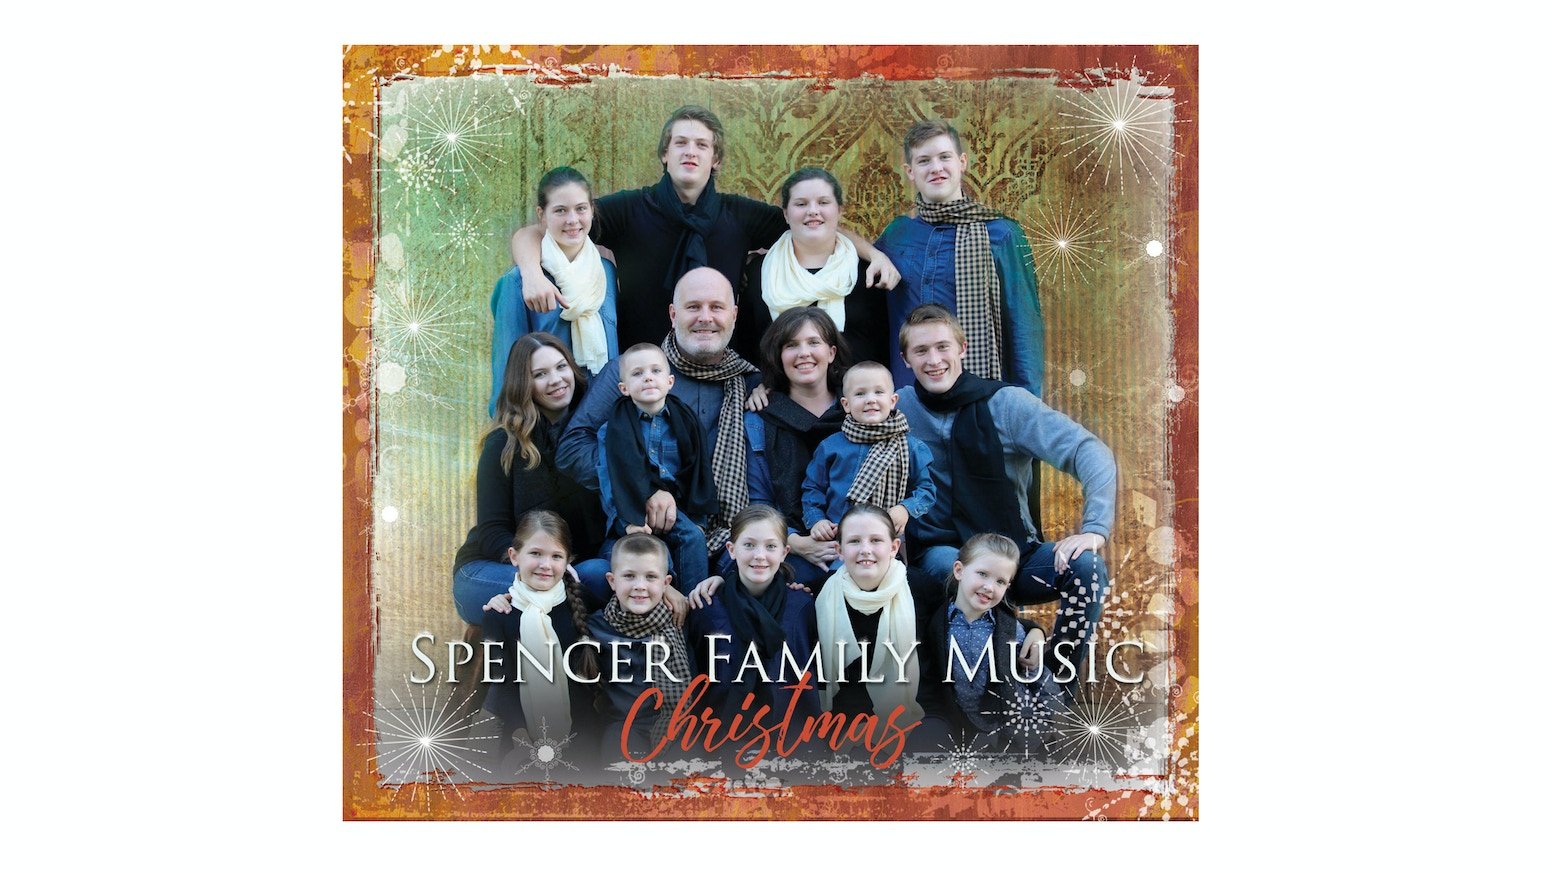 Producing the first Spencer Family Music Christmas album with lots of great  Christmas hymns and songs to celebrate the birth of Christ.